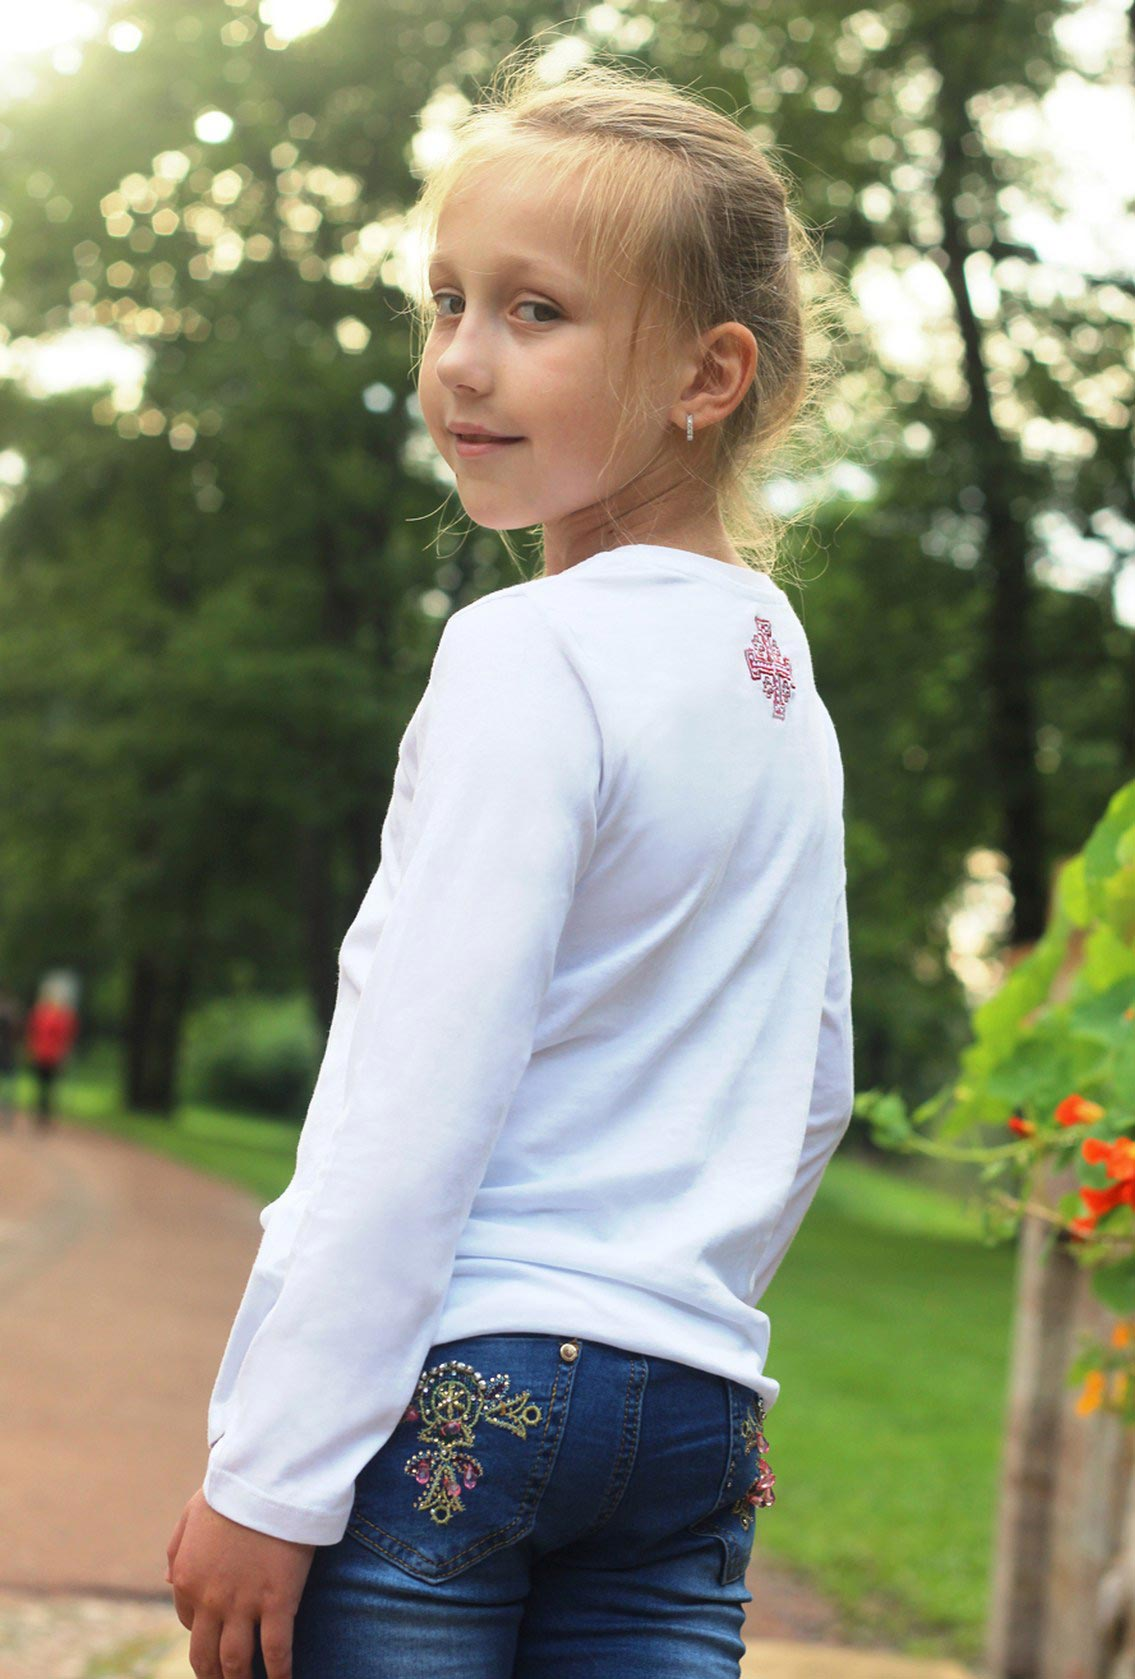 одежда для девочки с вышивкой, clothes for girls with embroidery